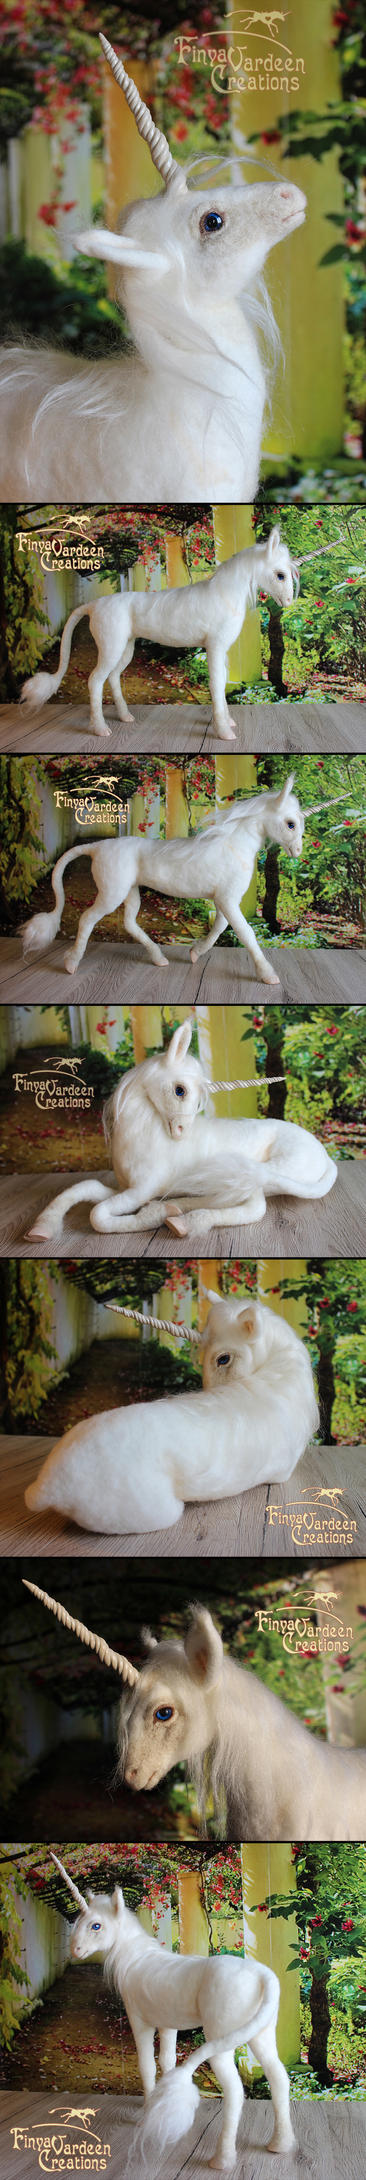 needle felted Unicorn 'Clouds Dream' by Finya-Vardeen